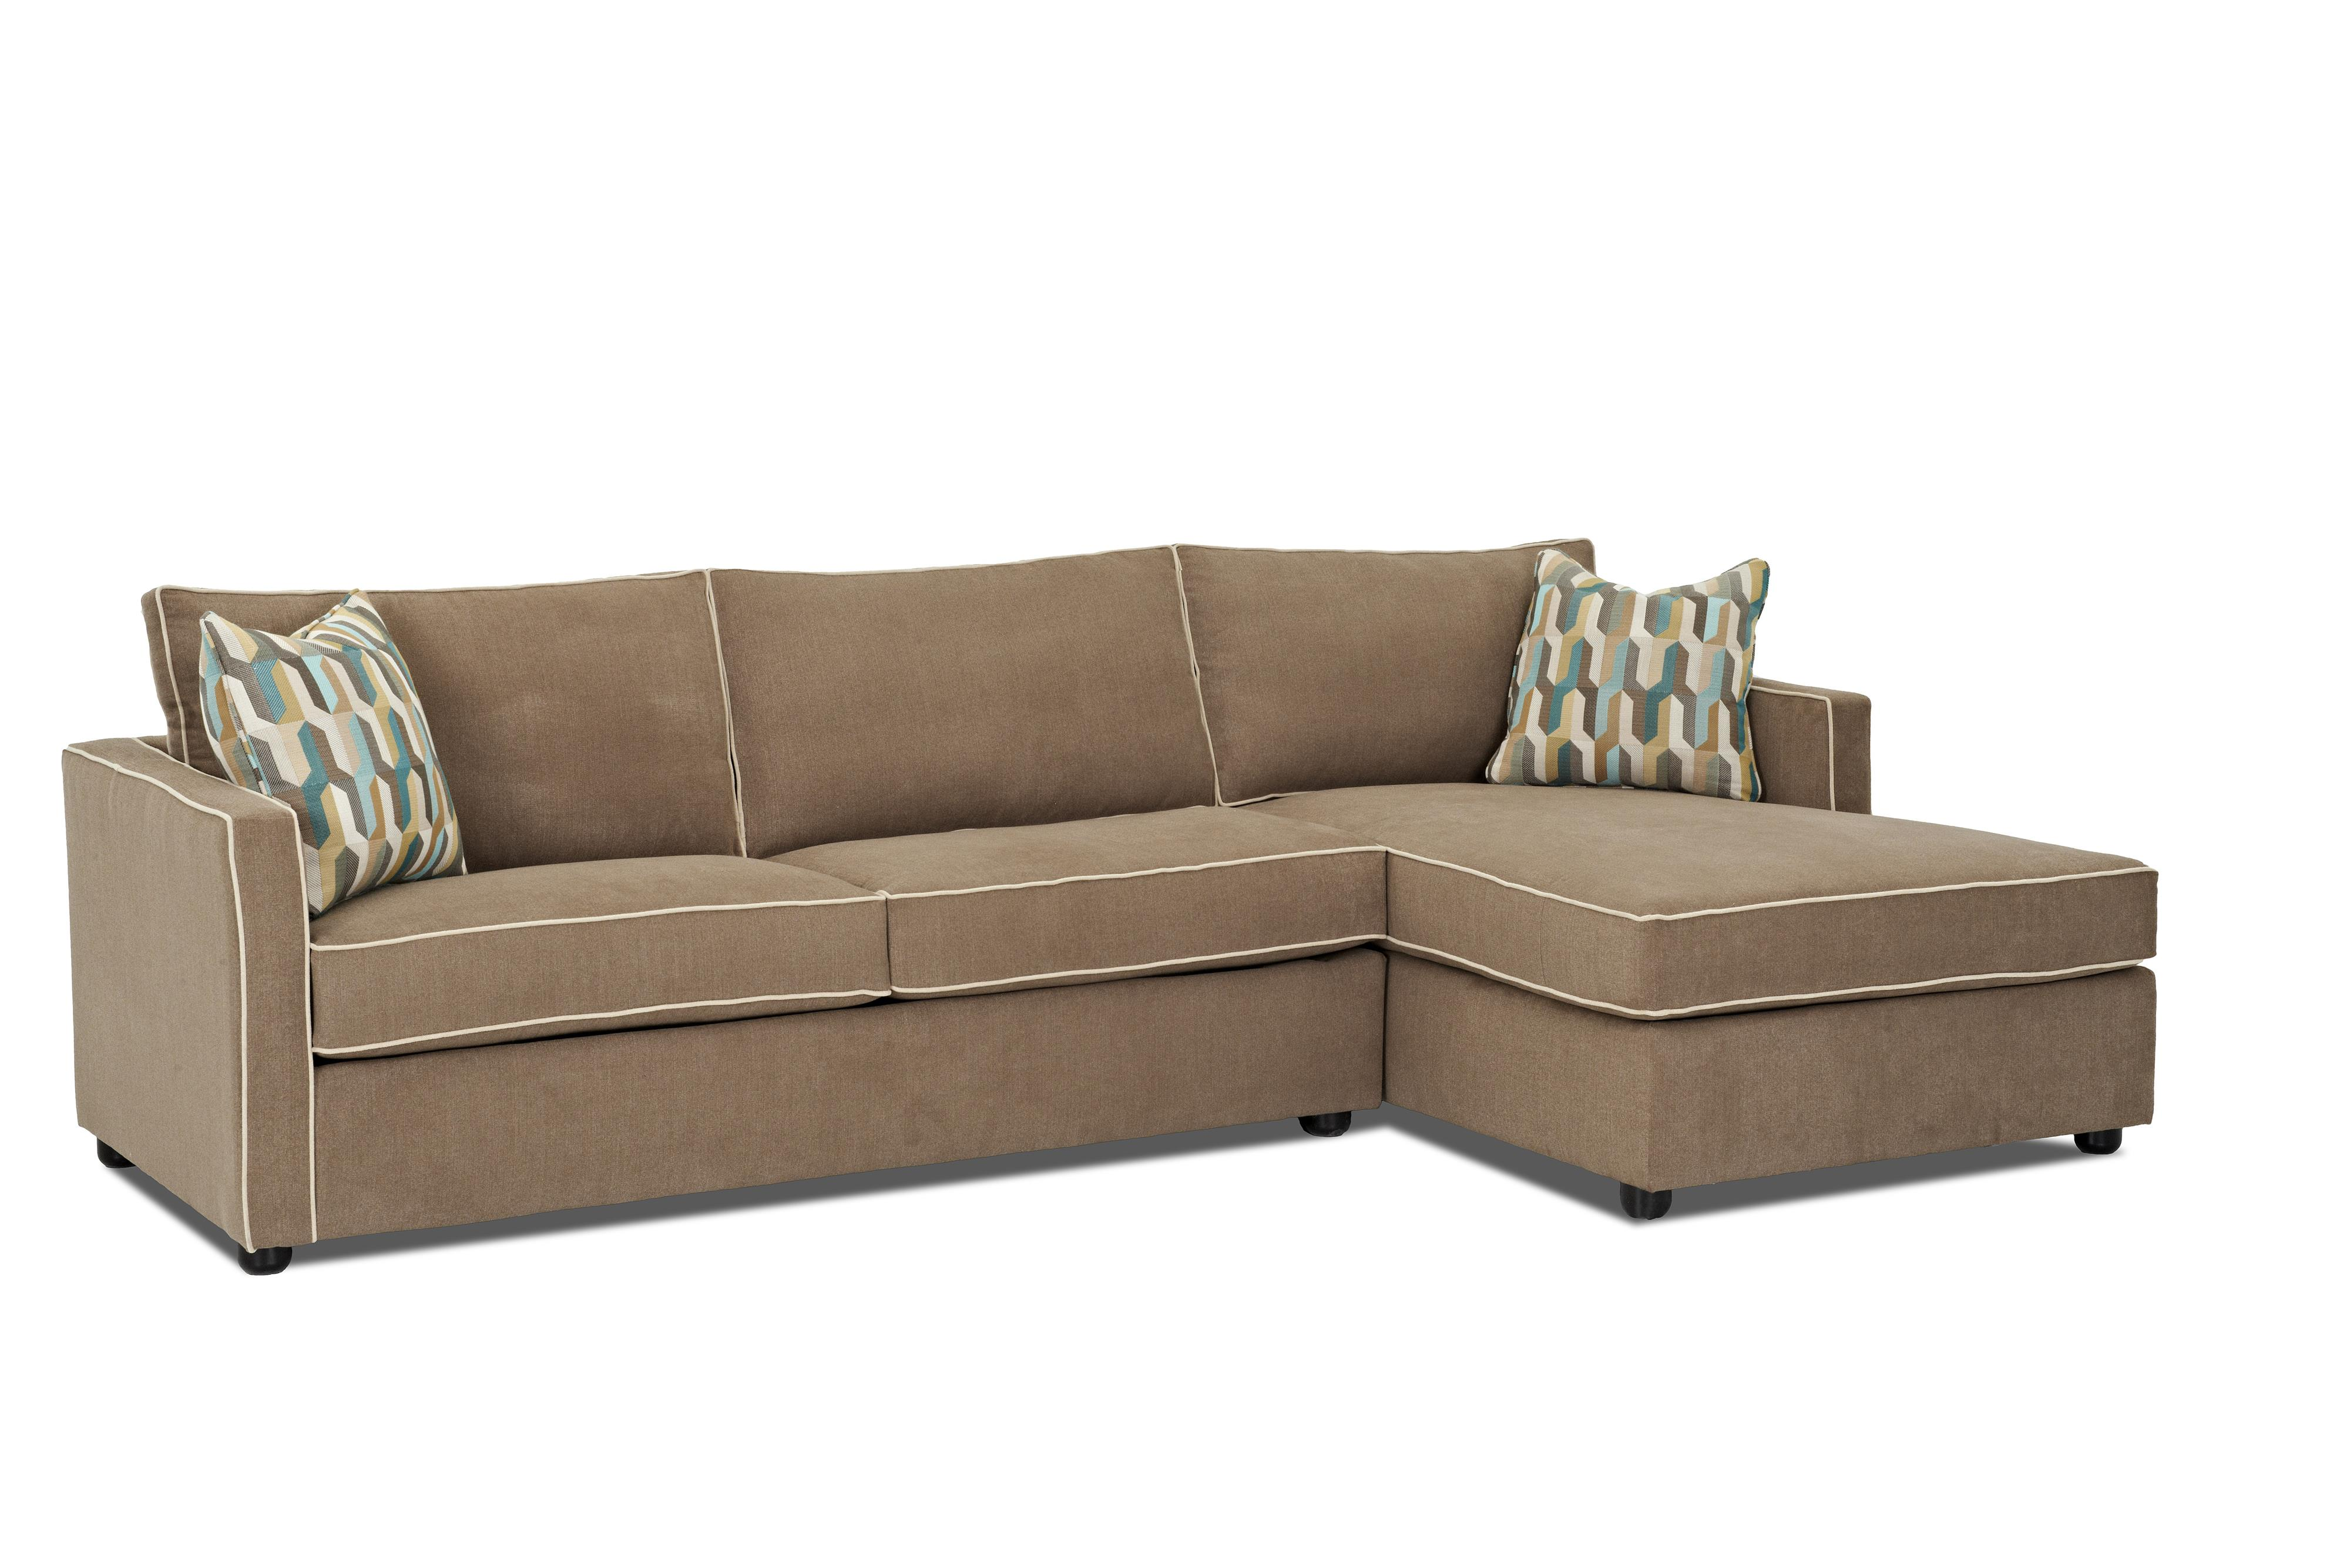 Klaussner Pendry Sectional Sofa with Chaise - Item Number: K89500L S+R CHASE-BrookesideTaupe